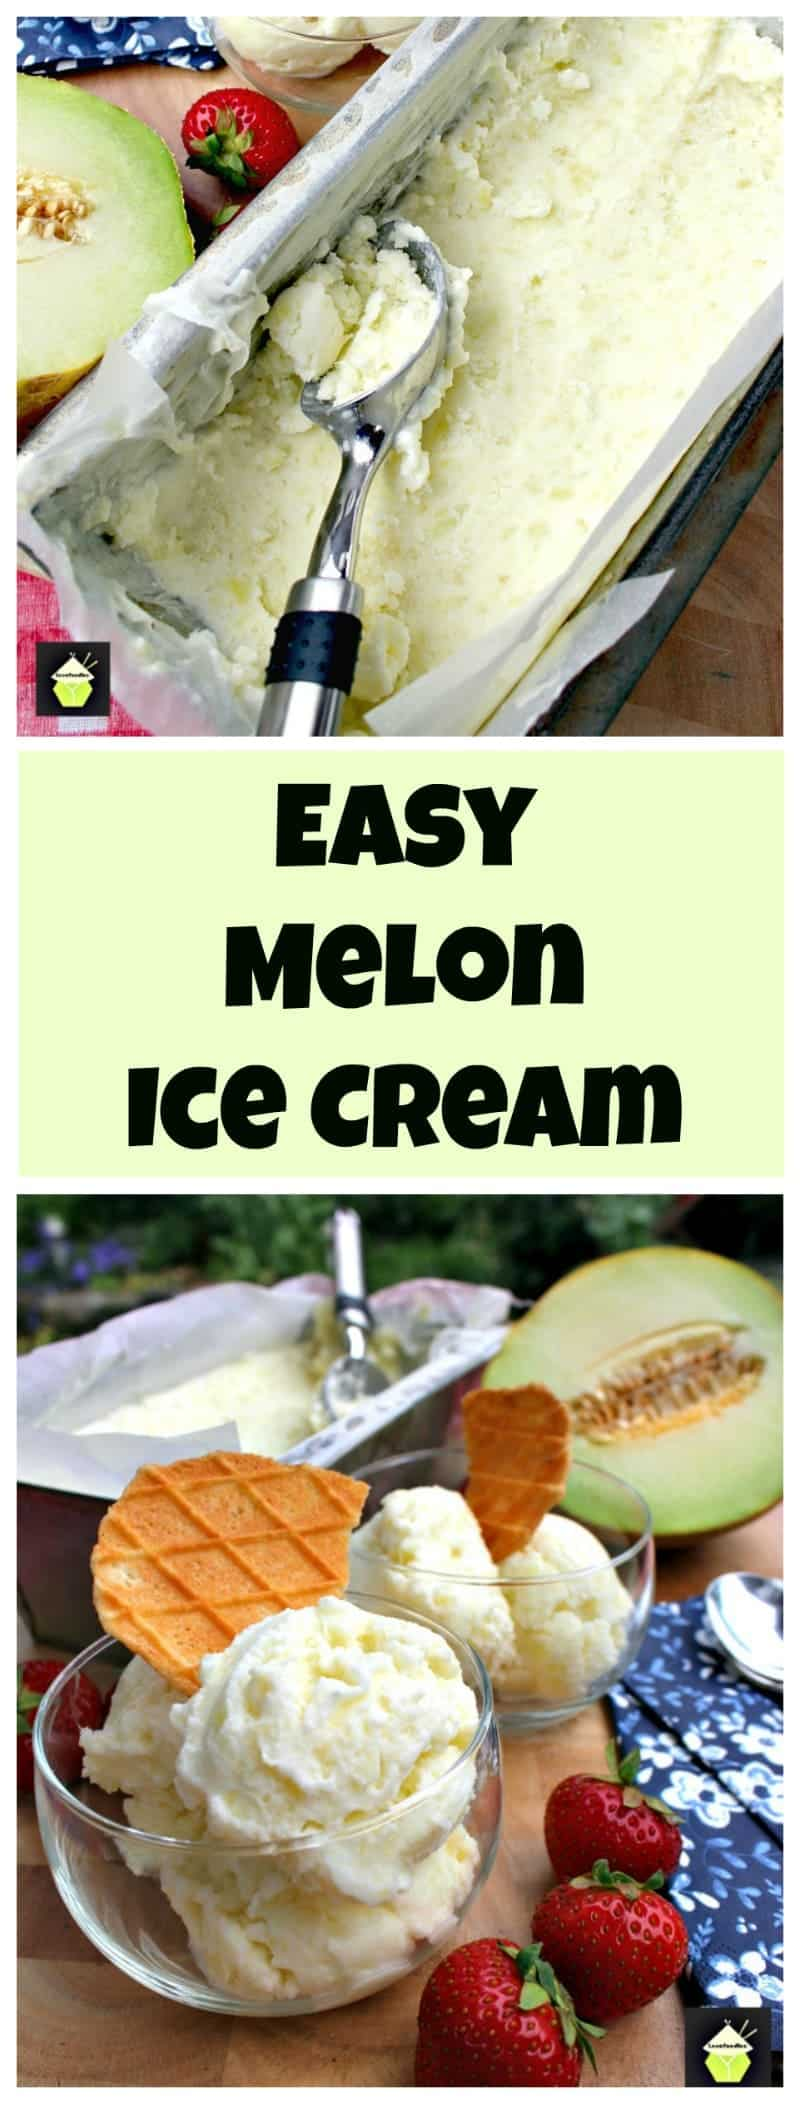 Easy Melon Ice Cream,An easy recipe with a great refreshing flavor. Egg free, creamy and delicious!